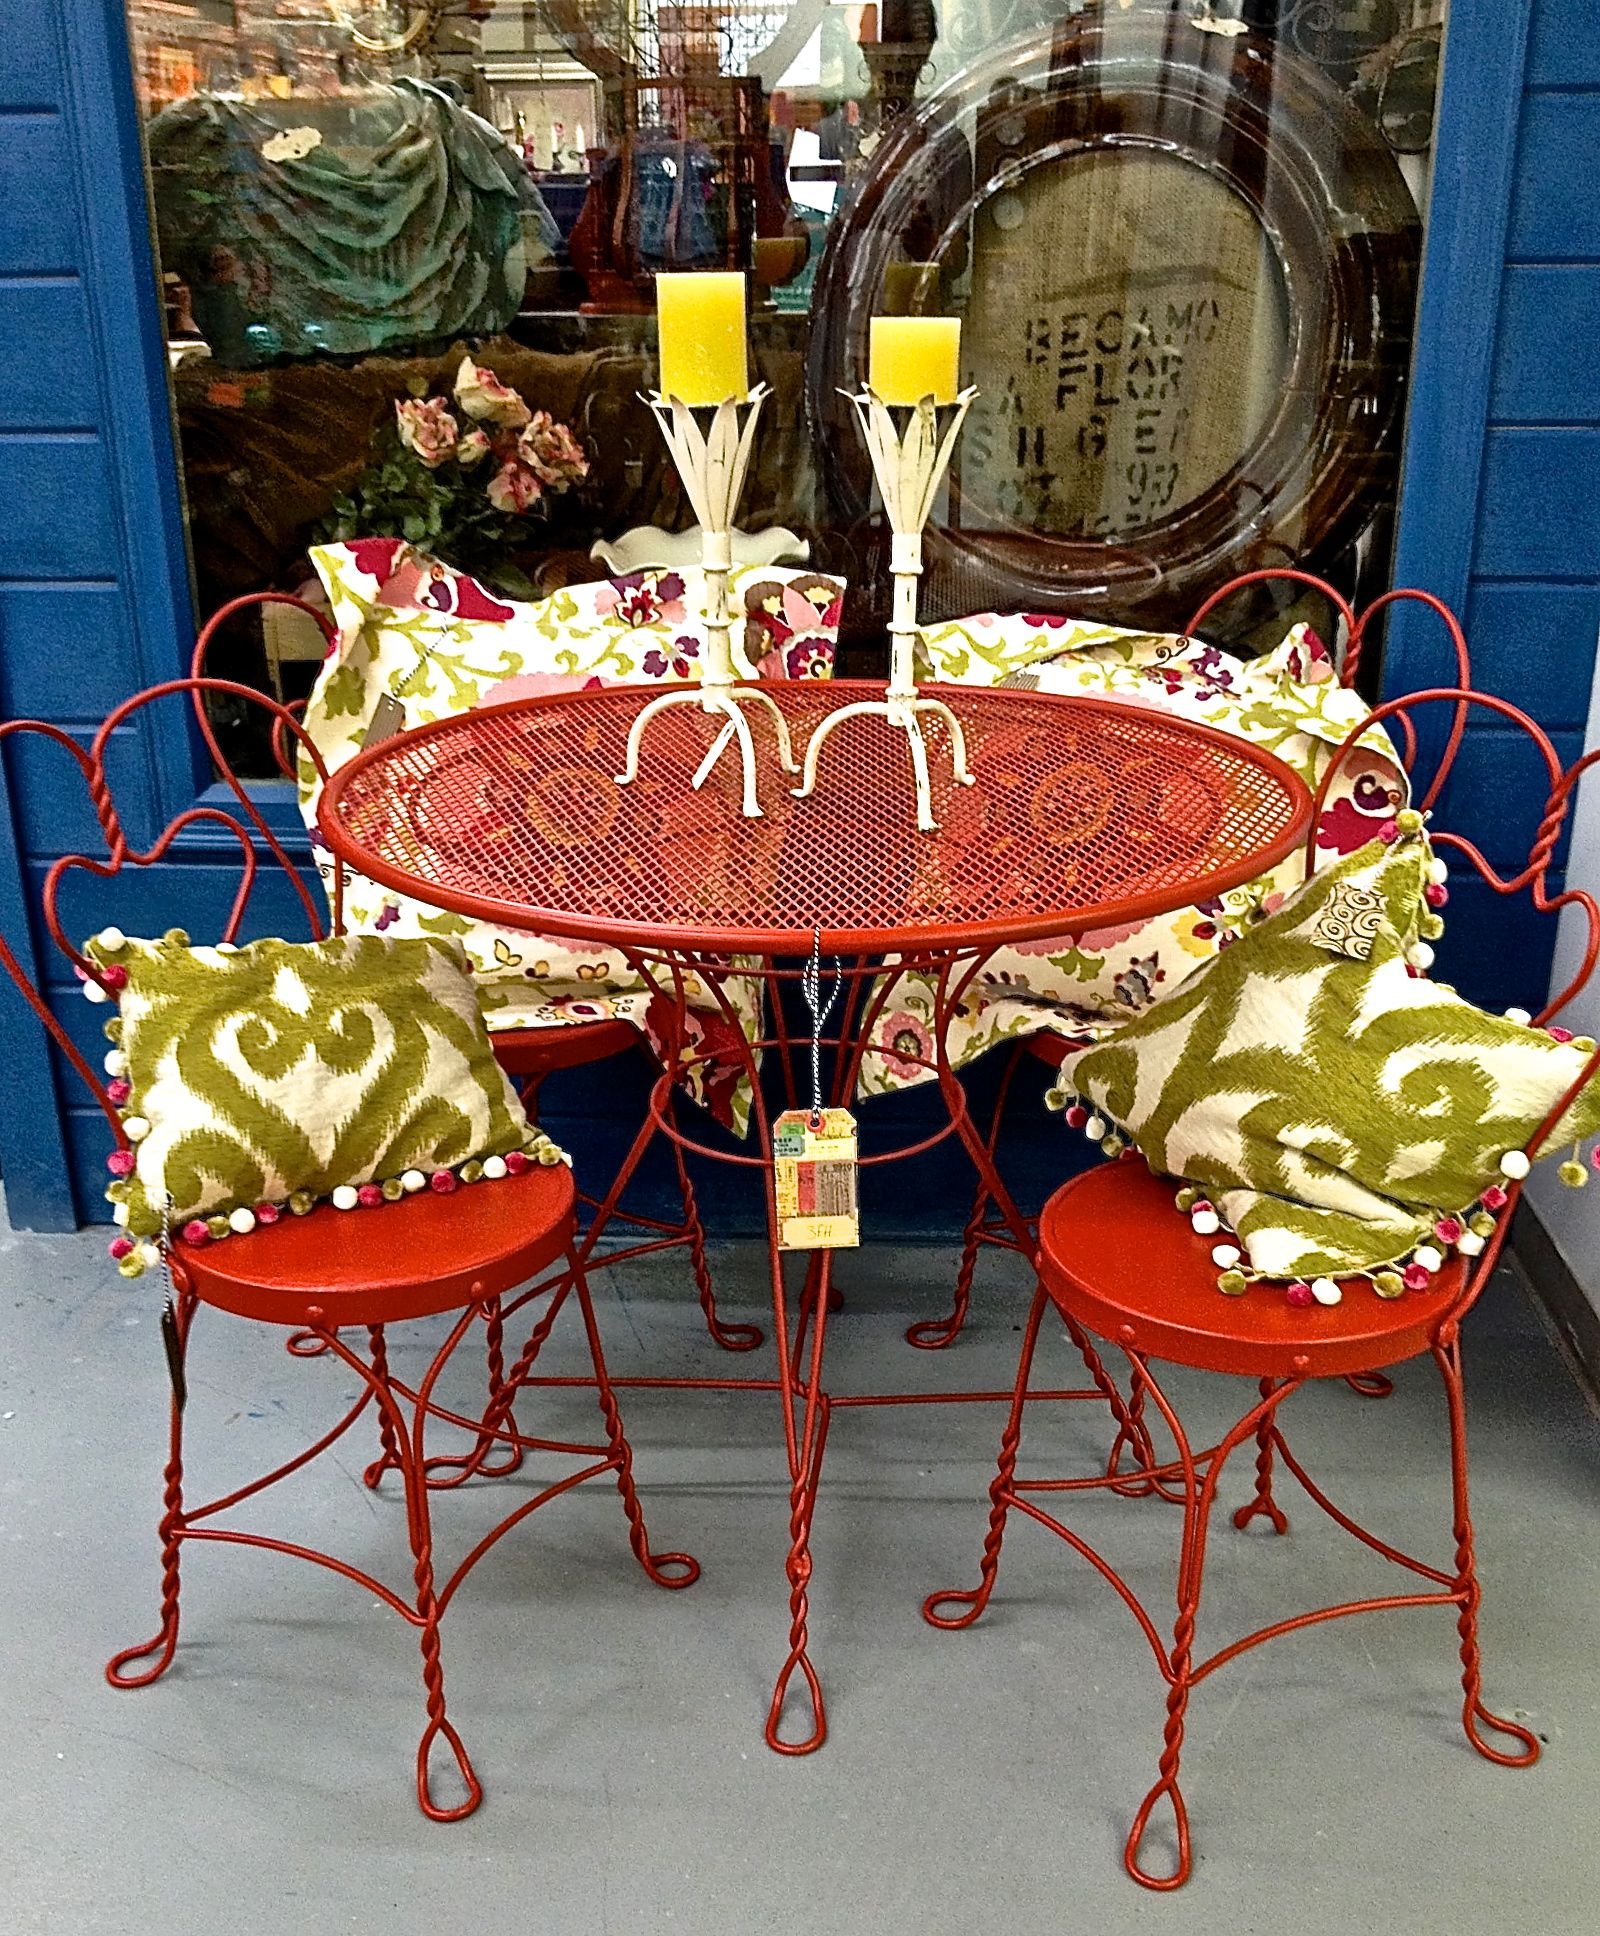 Vintage metal dinette set for porch deck or patio